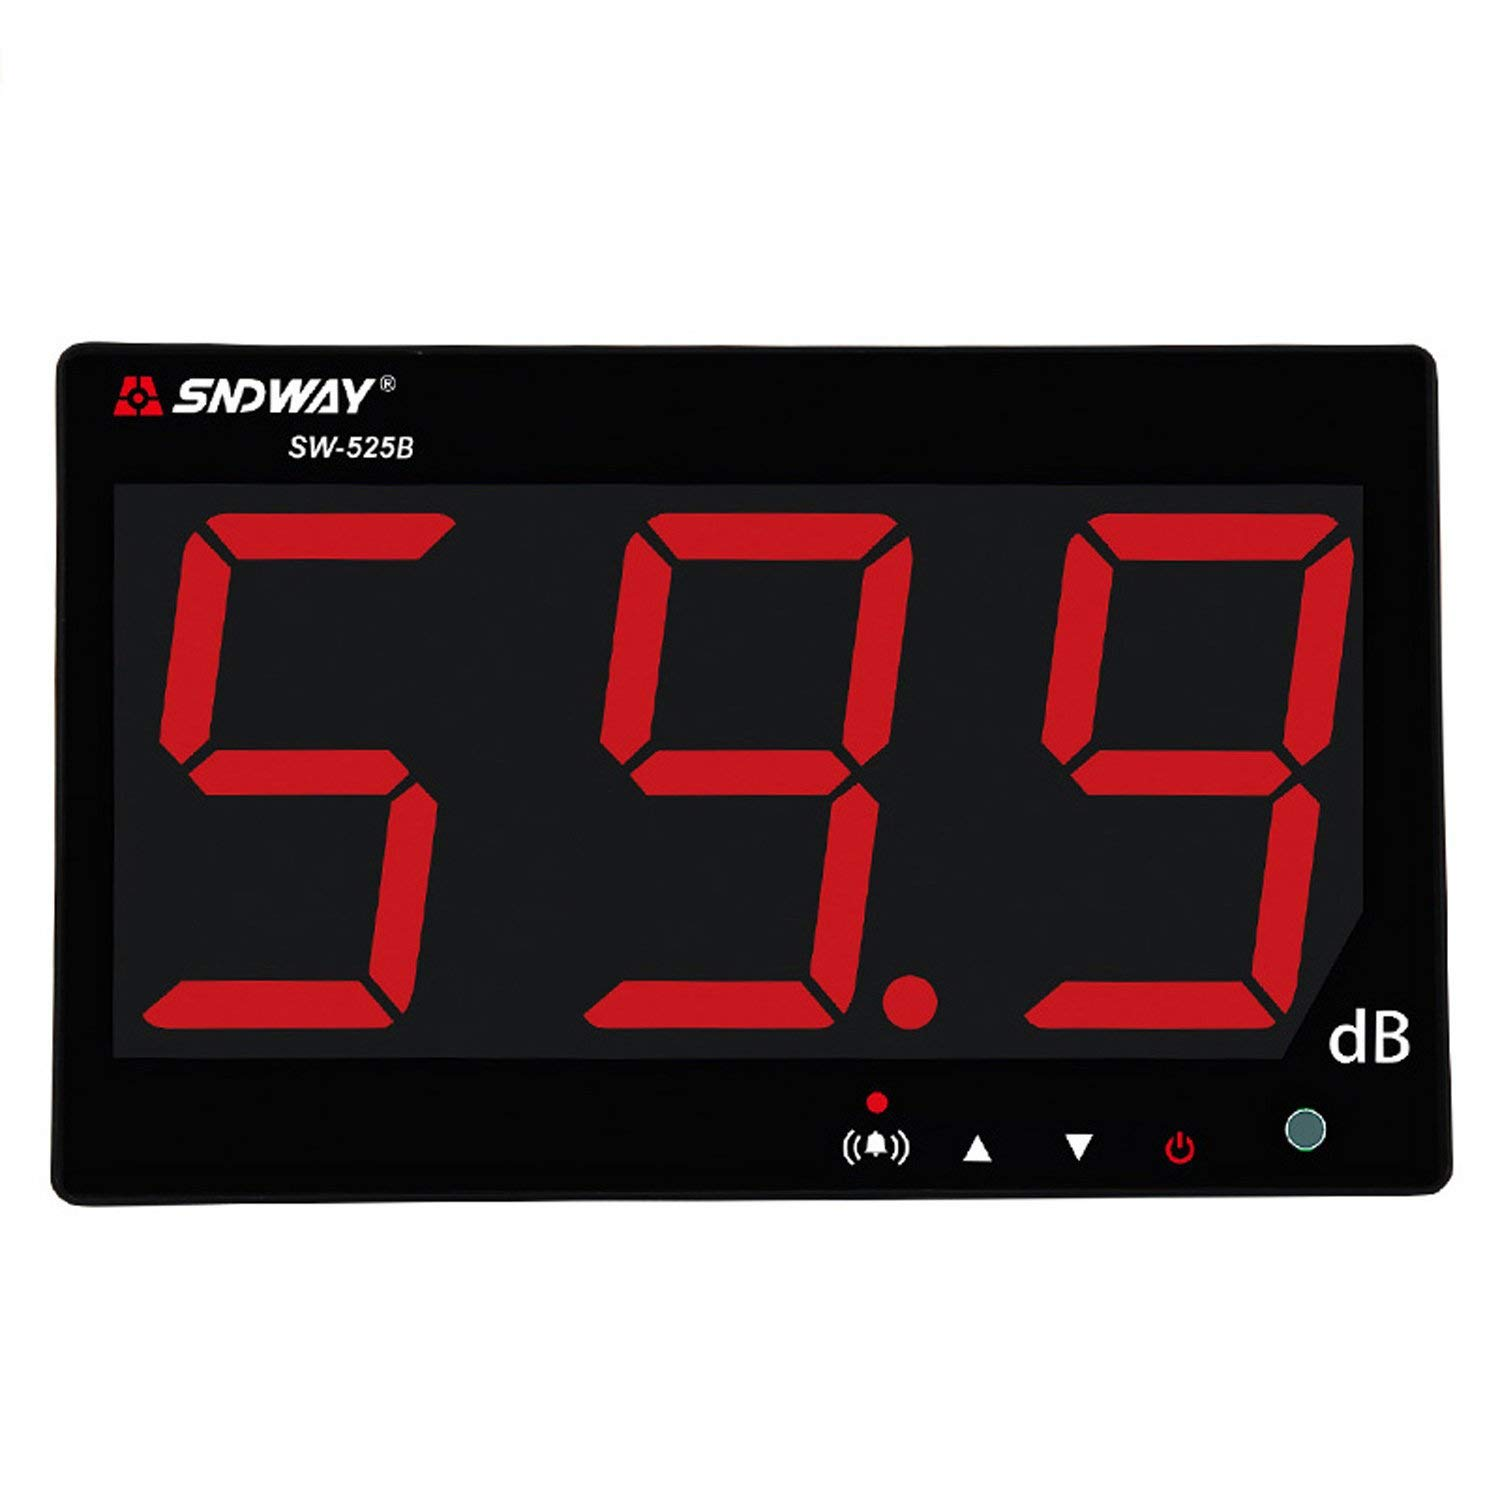 SNDWAY SW-525B 30-130dB Digital Sound Level Meter with Large LCD Display Noise Meter Decibel Wall Mounted Hanging by SNDWAY